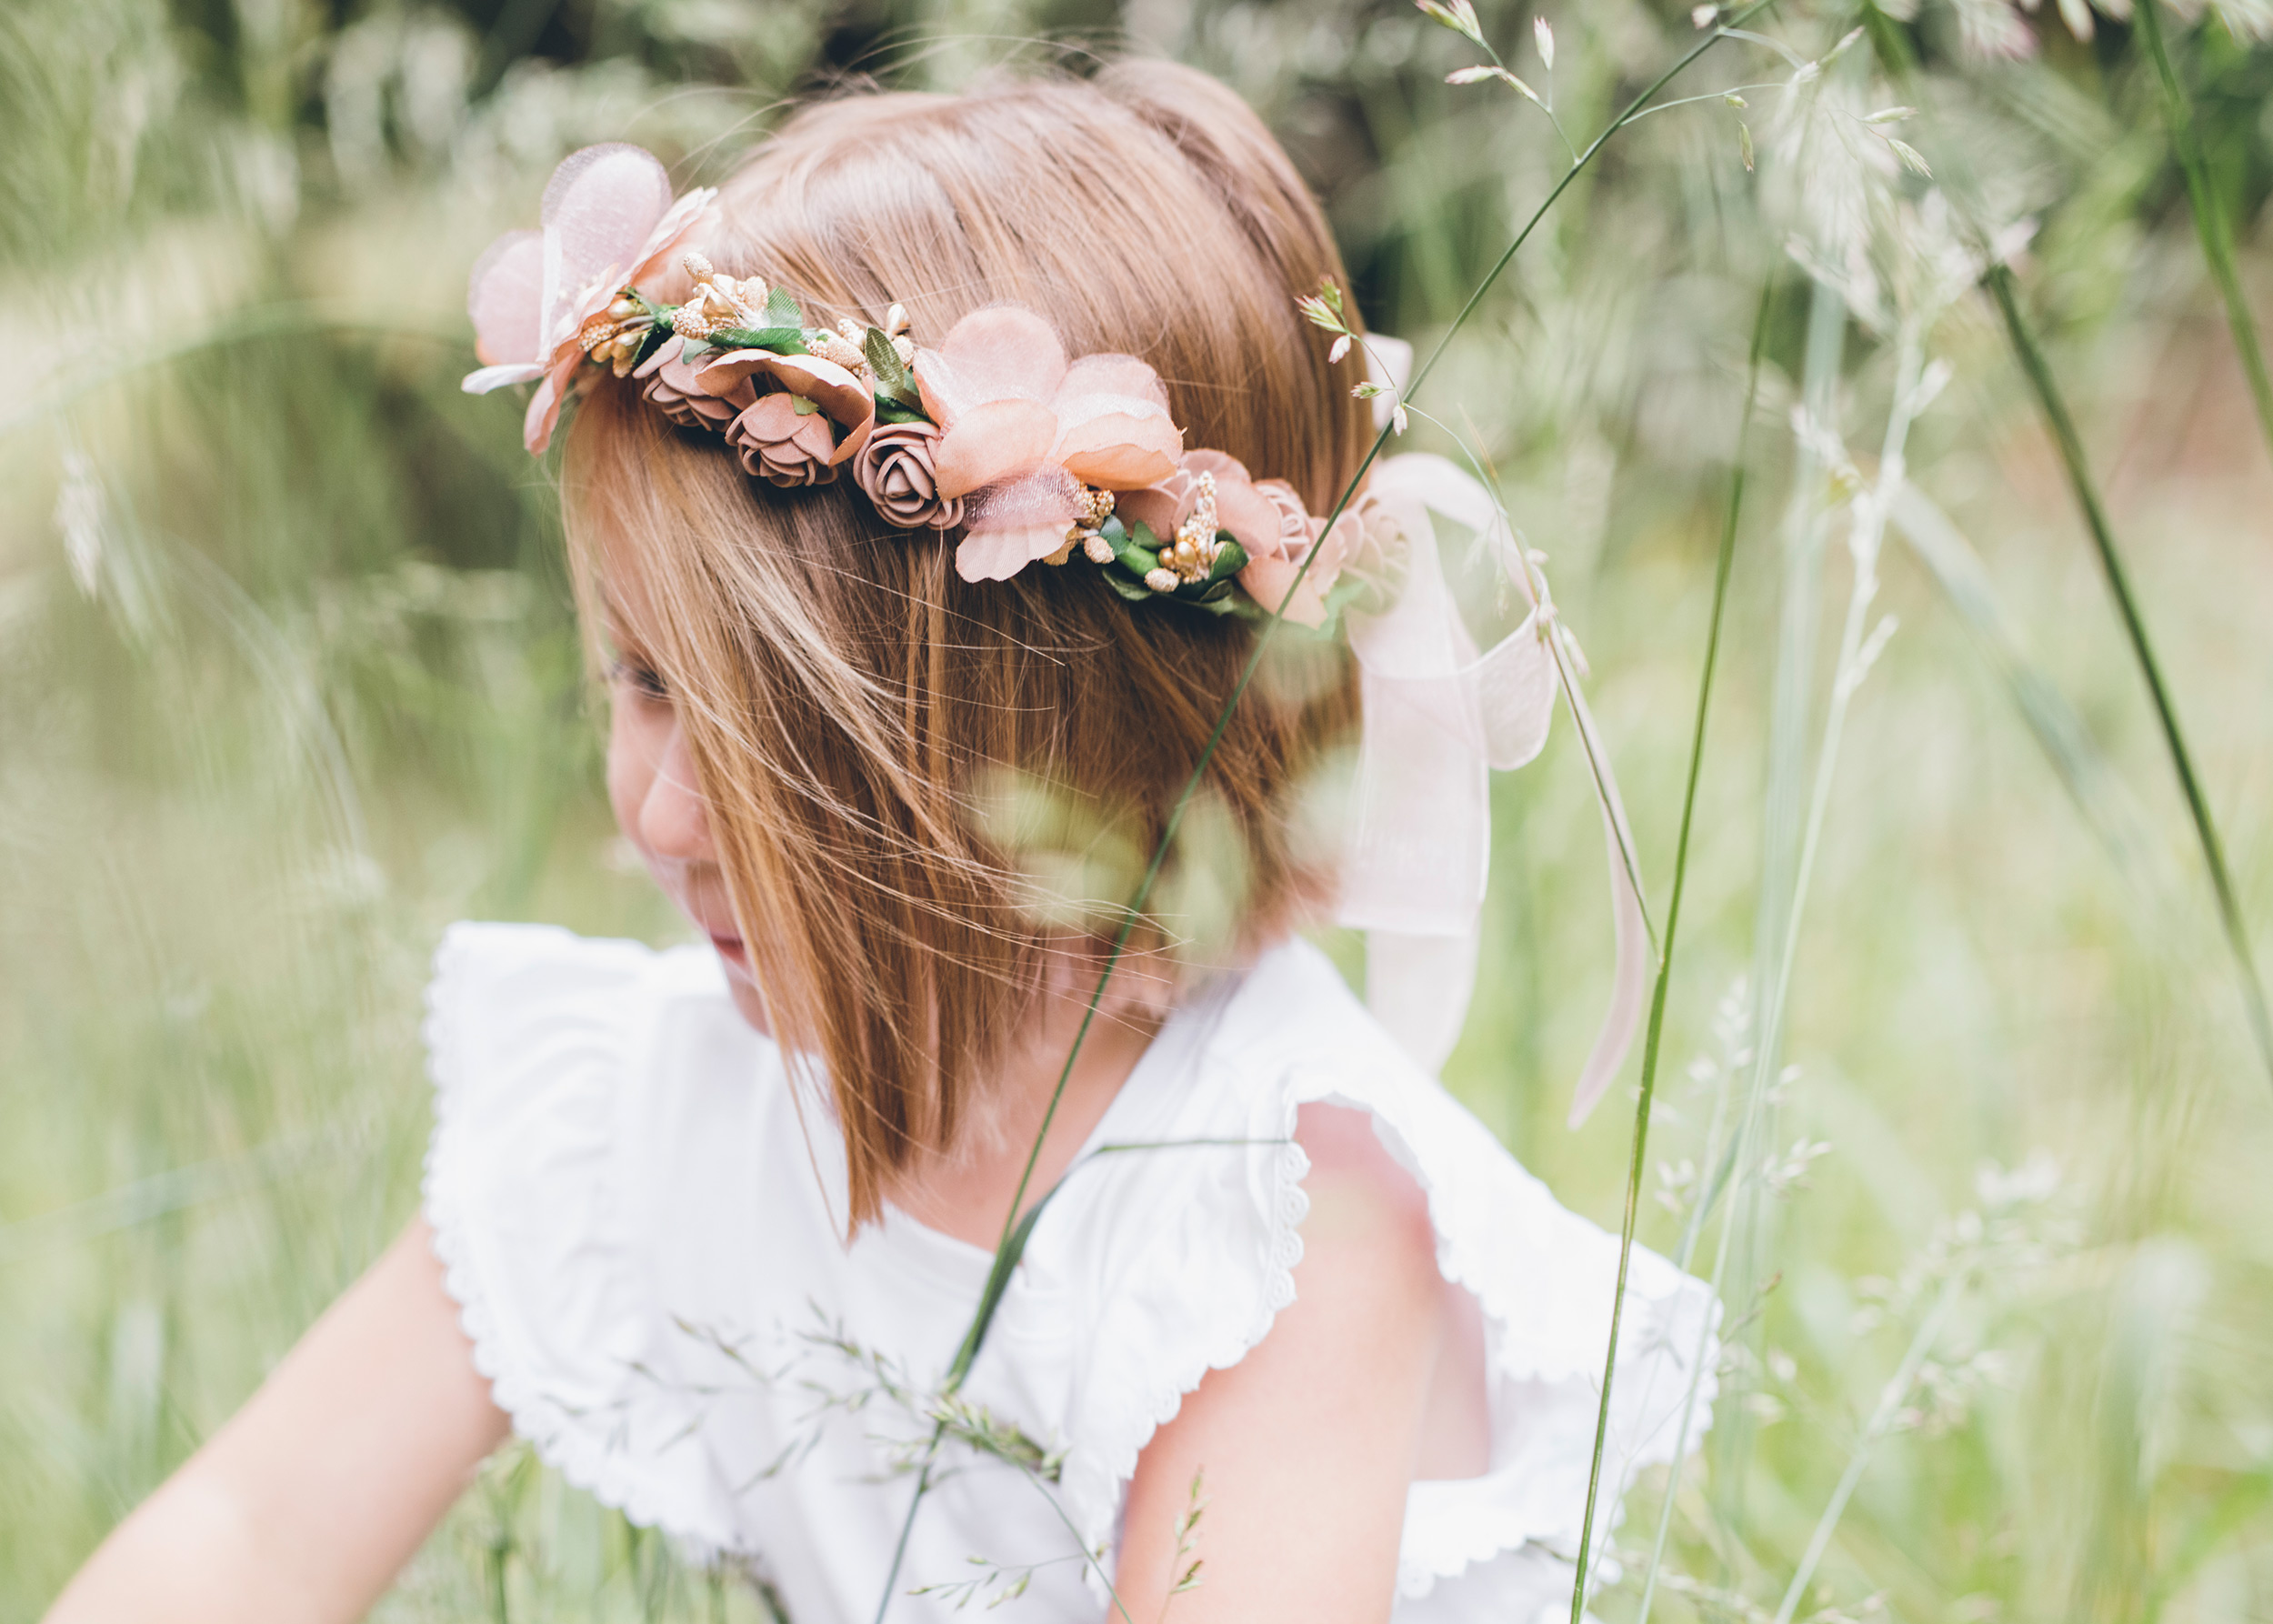 flower-girl-photographed-through-tall-grass.jpg